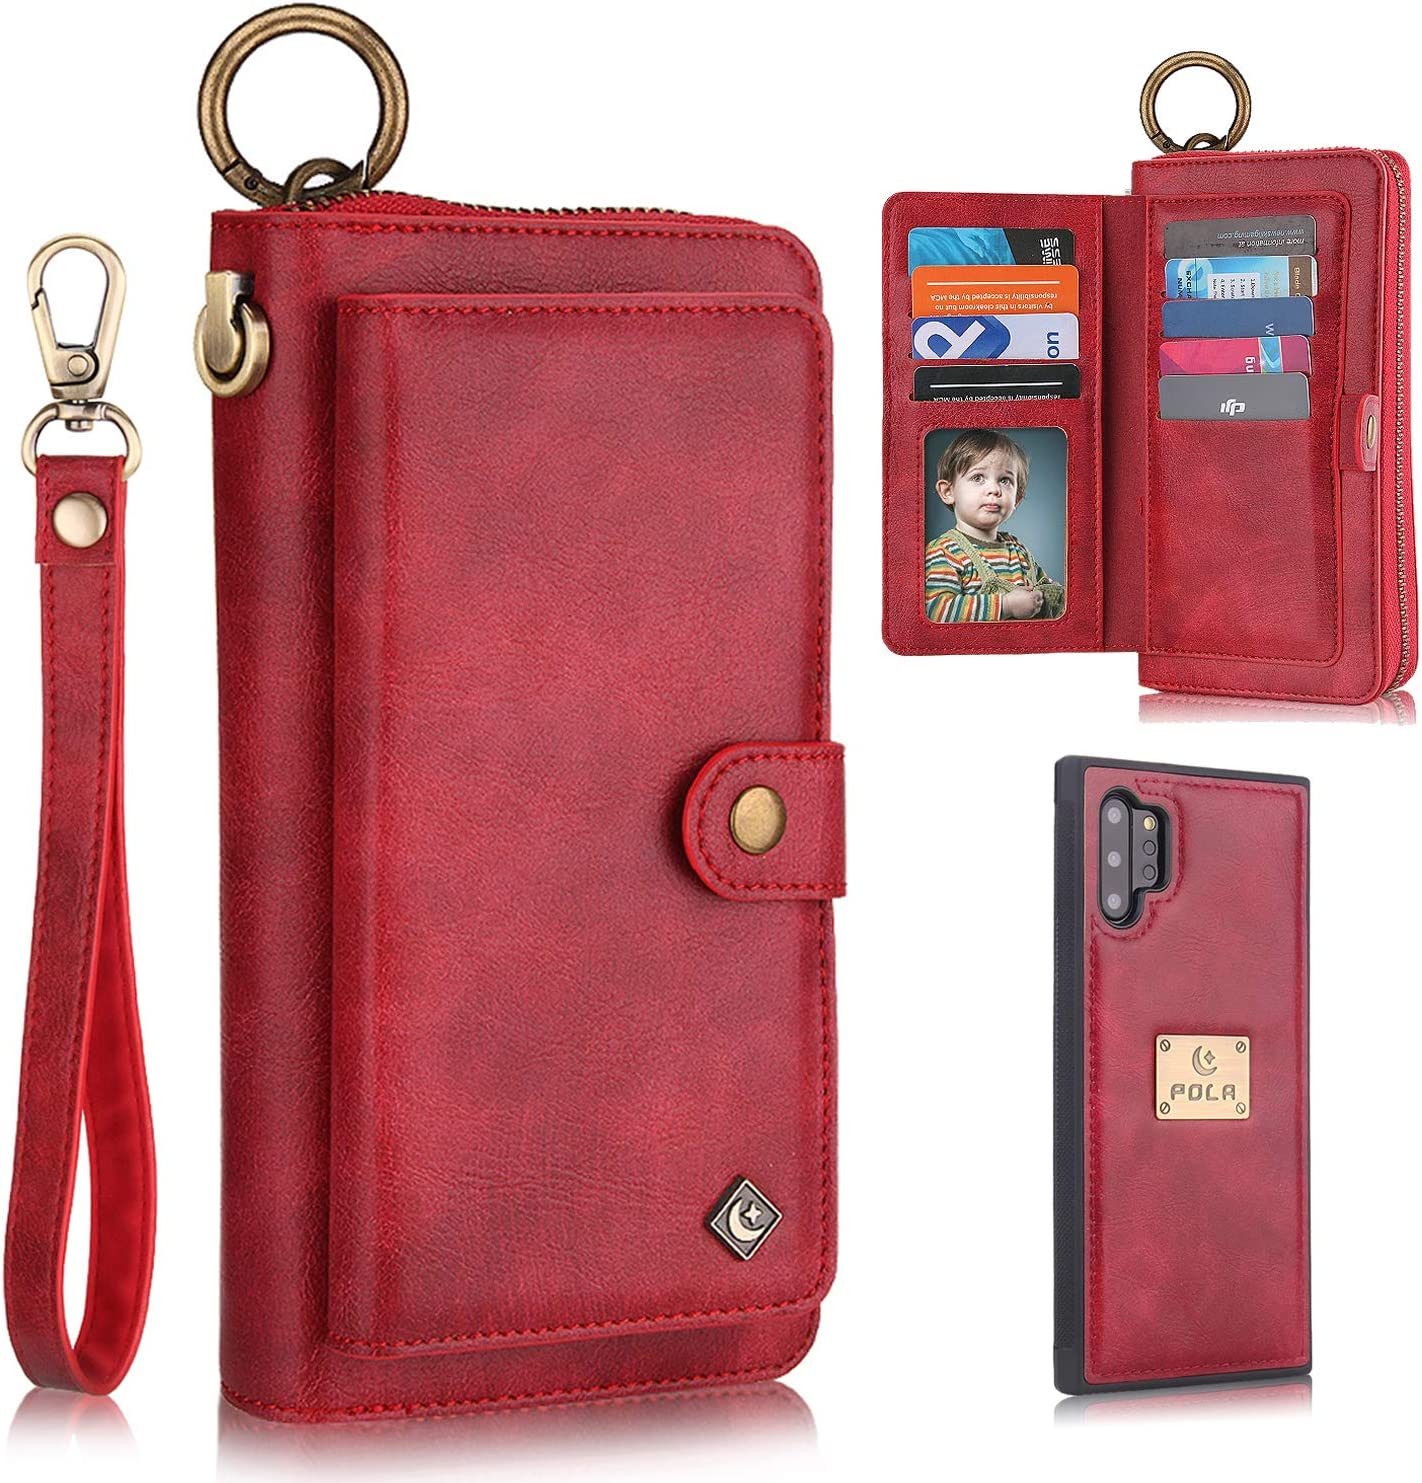 Galaxy Note 10 Plus Case, Note 10+ Plus 5G Case Wallet, XRPow [2 in 1] [Magnetic Detachable] Zipper Wallet Folio Case [Wrist Strap] Slim Leather Shock Back Cover with Credit Card Holder Purse - Red